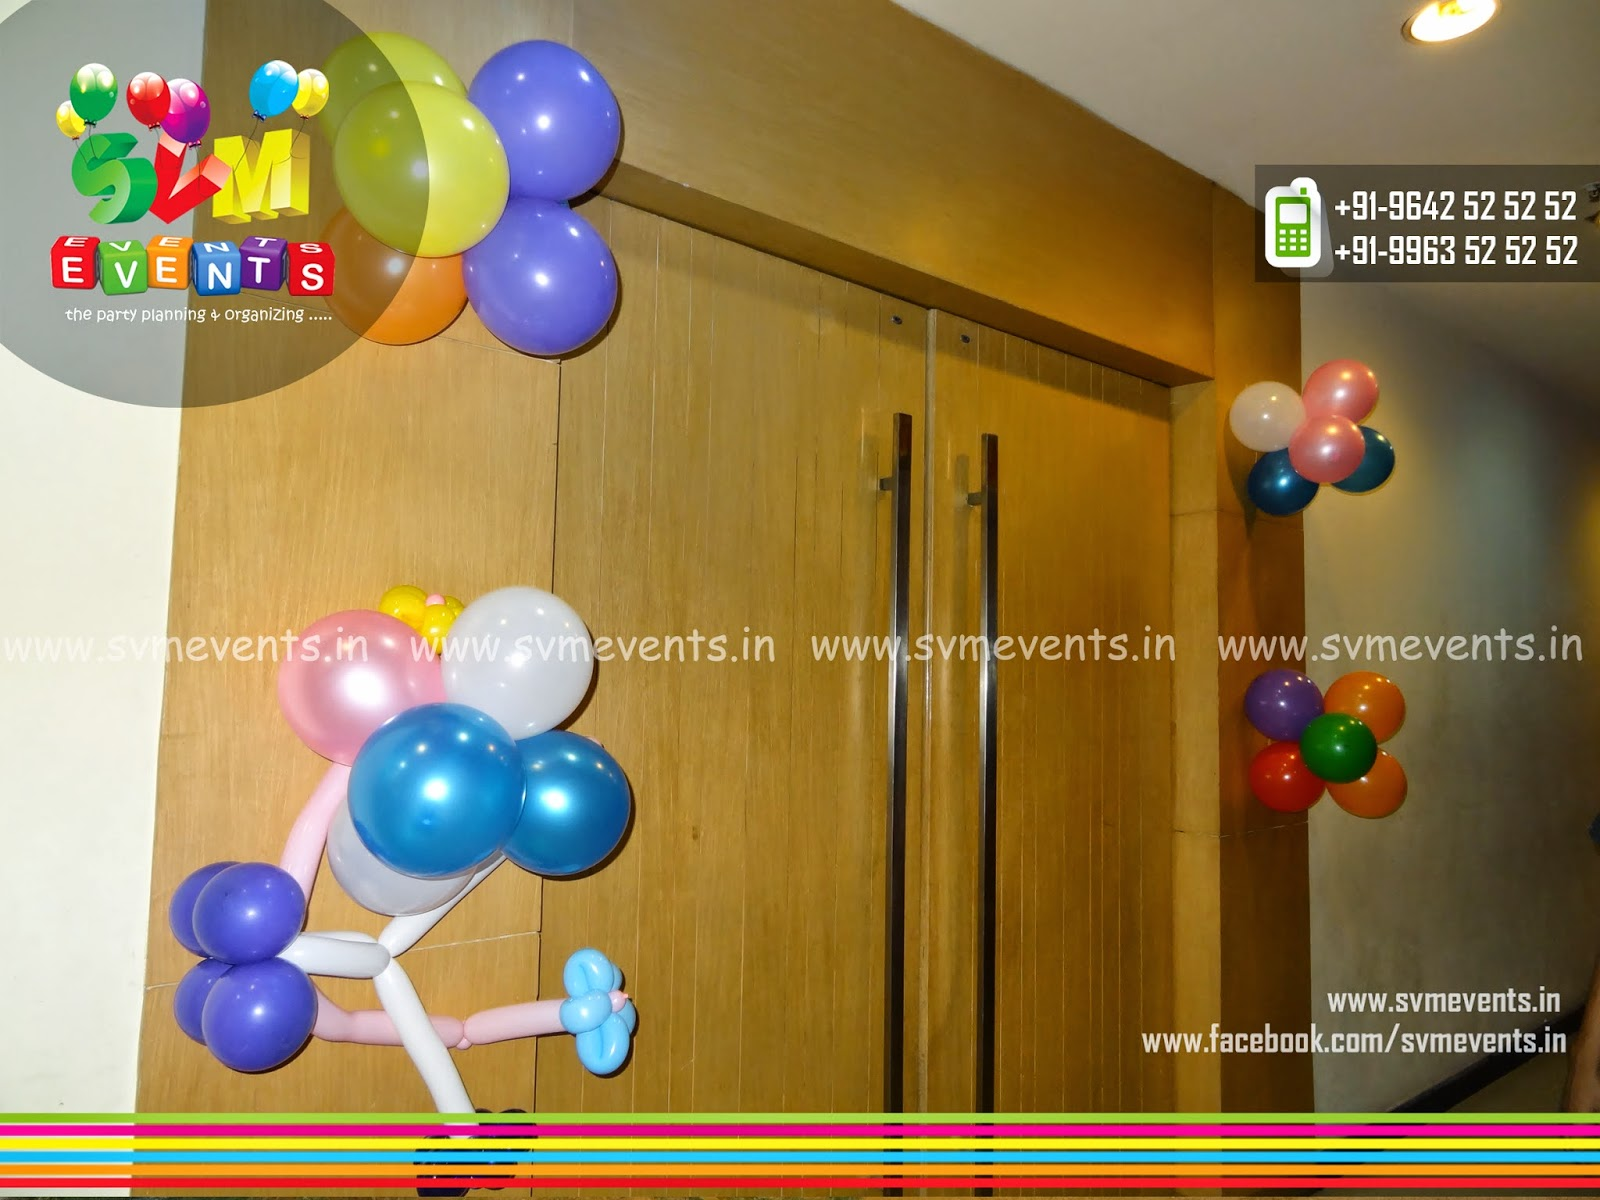 Svm Events : 4. Balloon decorations ( Reguler )